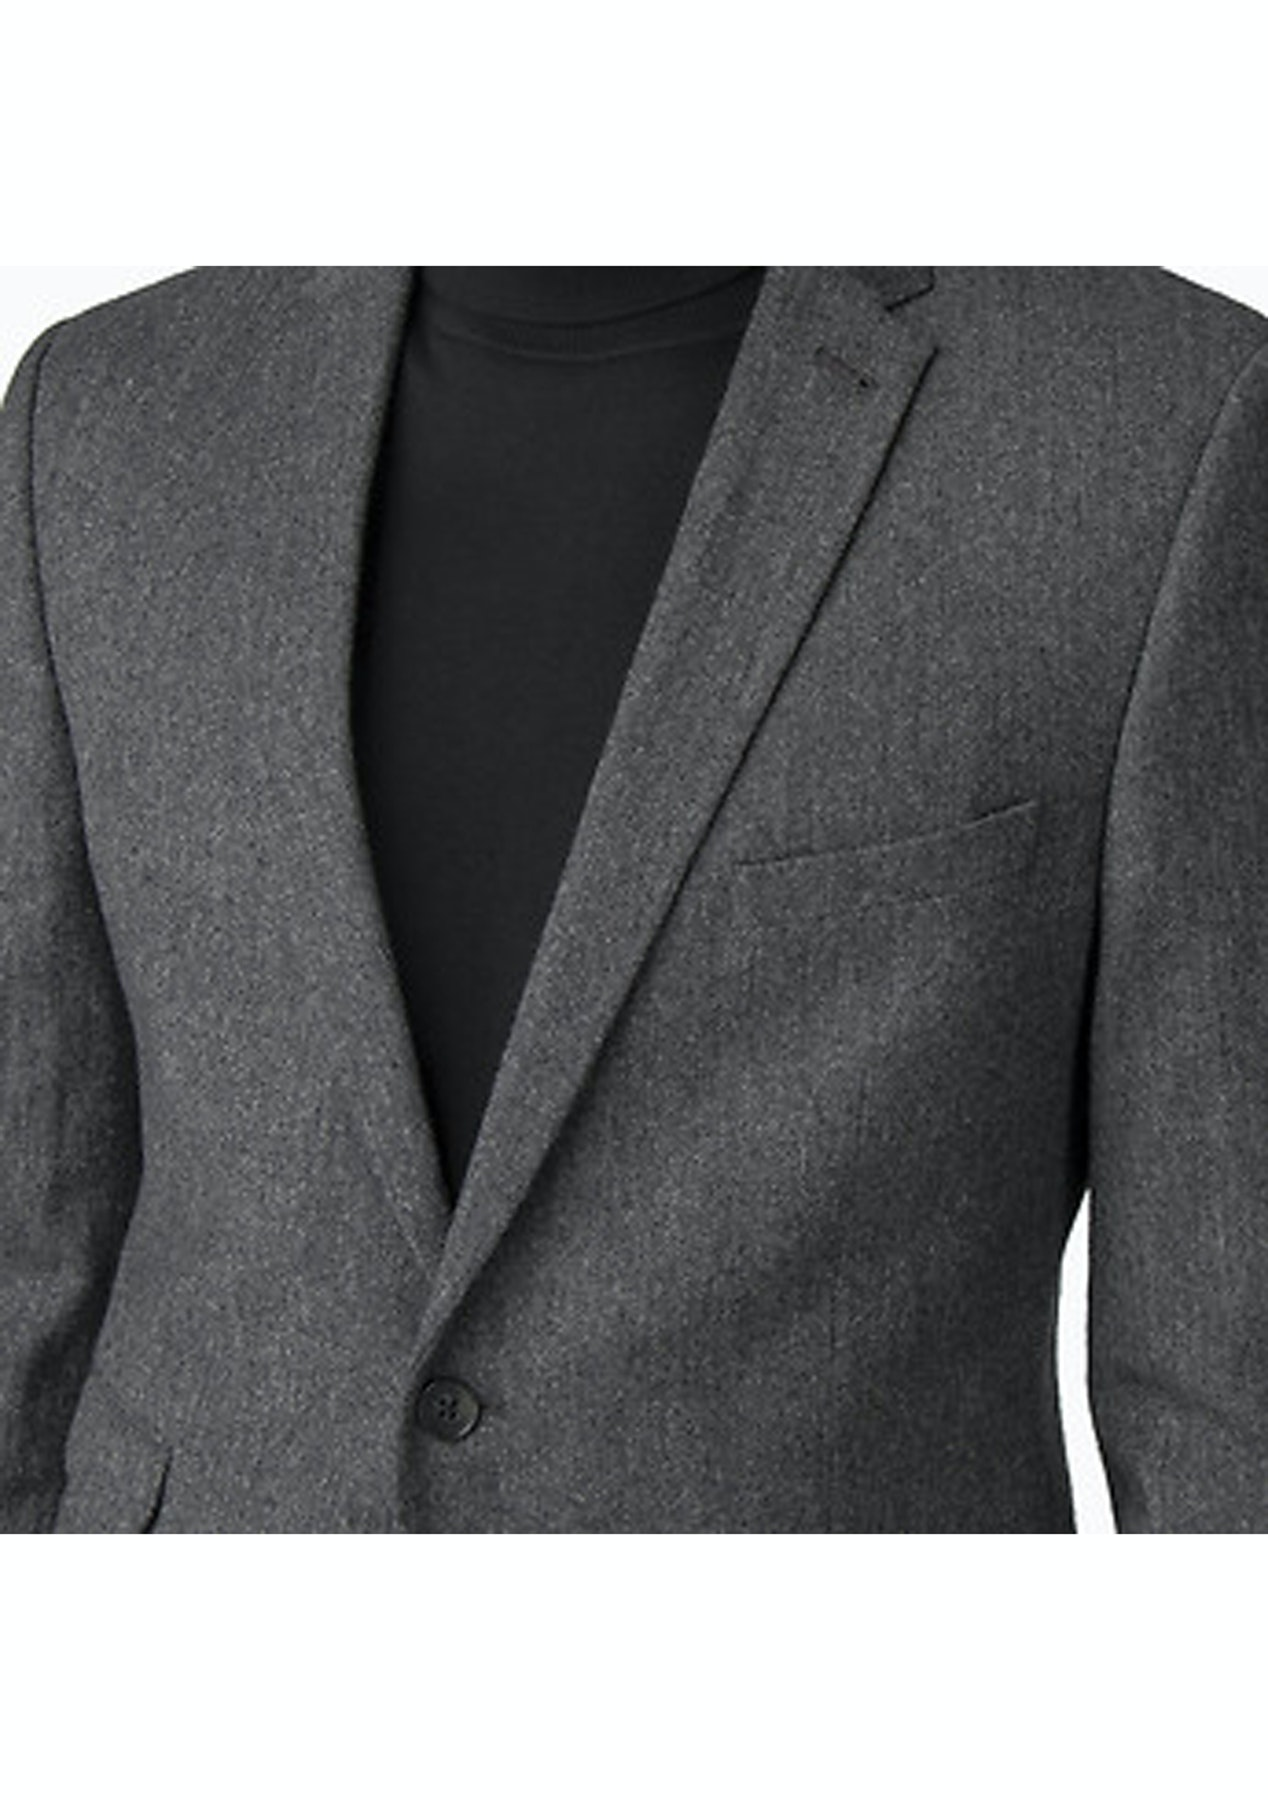 43a35d6373aeb1 Ben Sherman - British Charcoal Donegal Jacket Charcoal - Ben Sherman -  Onceit